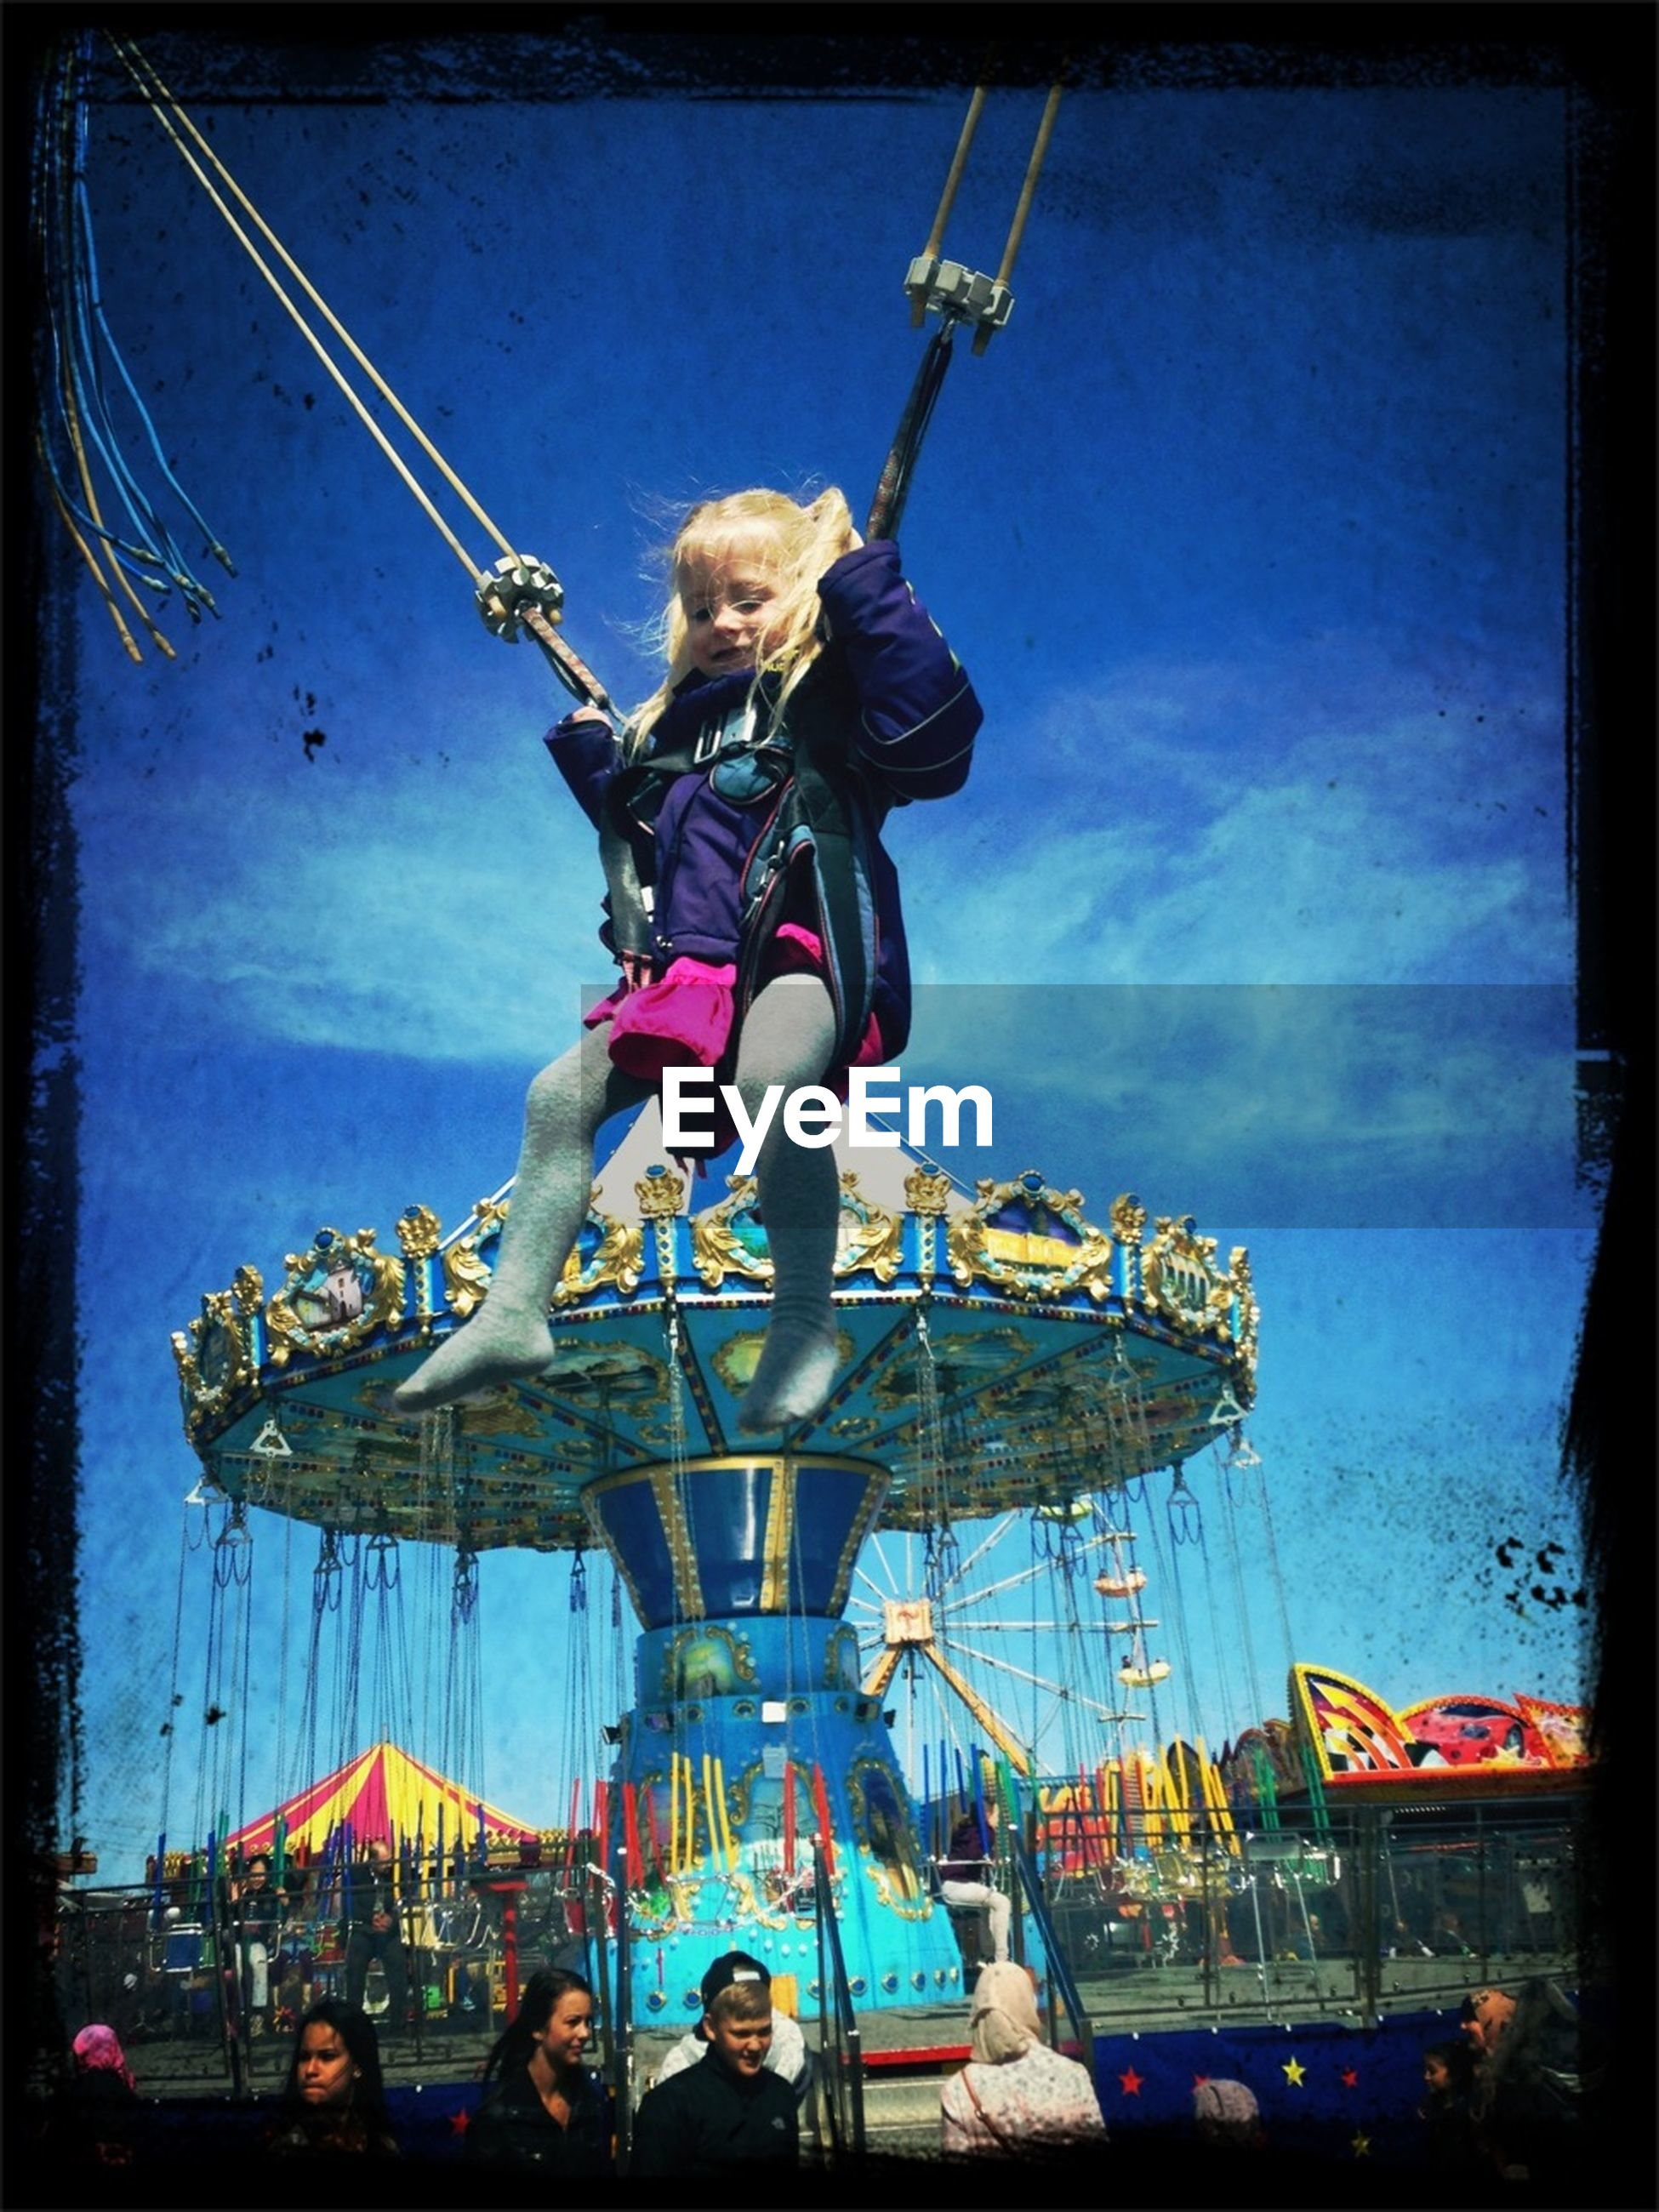 transfer print, leisure activity, lifestyles, full length, auto post production filter, enjoyment, fun, men, blue, arts culture and entertainment, sky, playing, amusement park, excitement, childhood, performance, boys, casual clothing